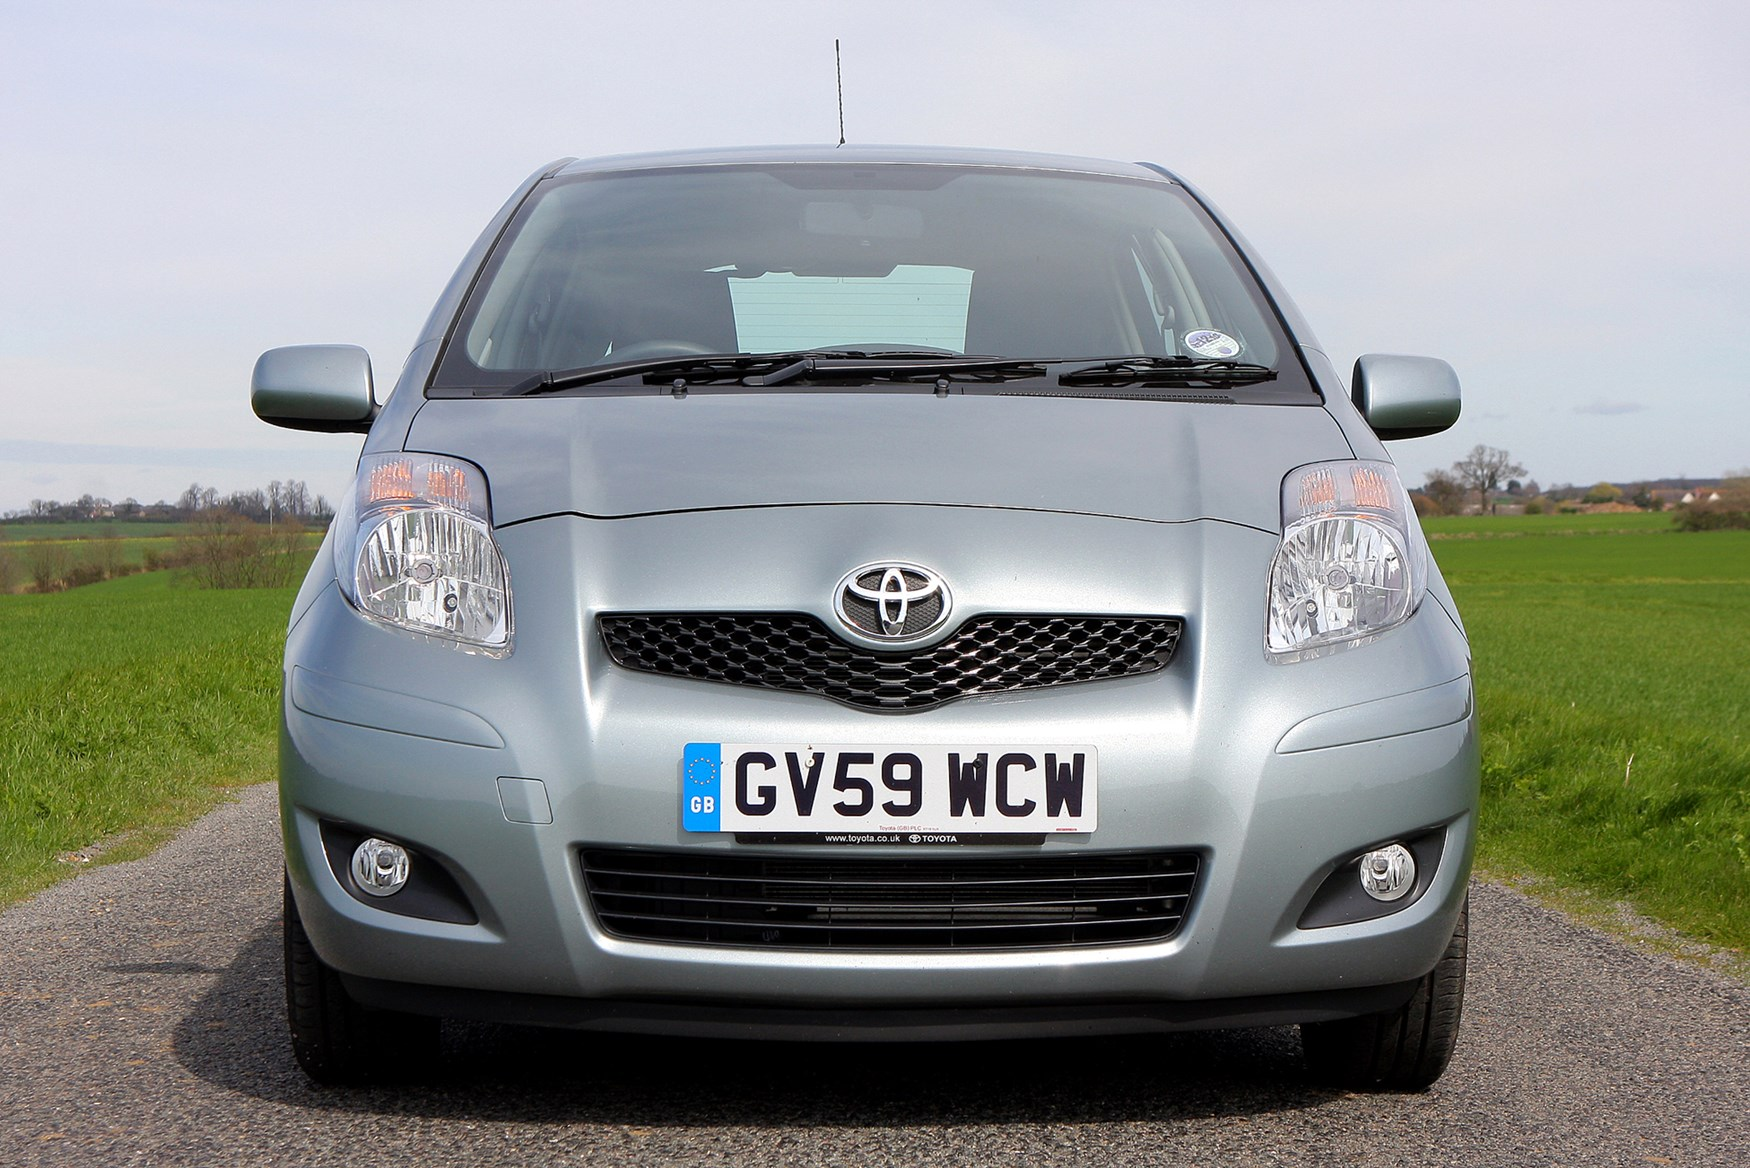 Toyota Yaris Hatchback 2006 2011 Features Equipment And Accessories Parkers